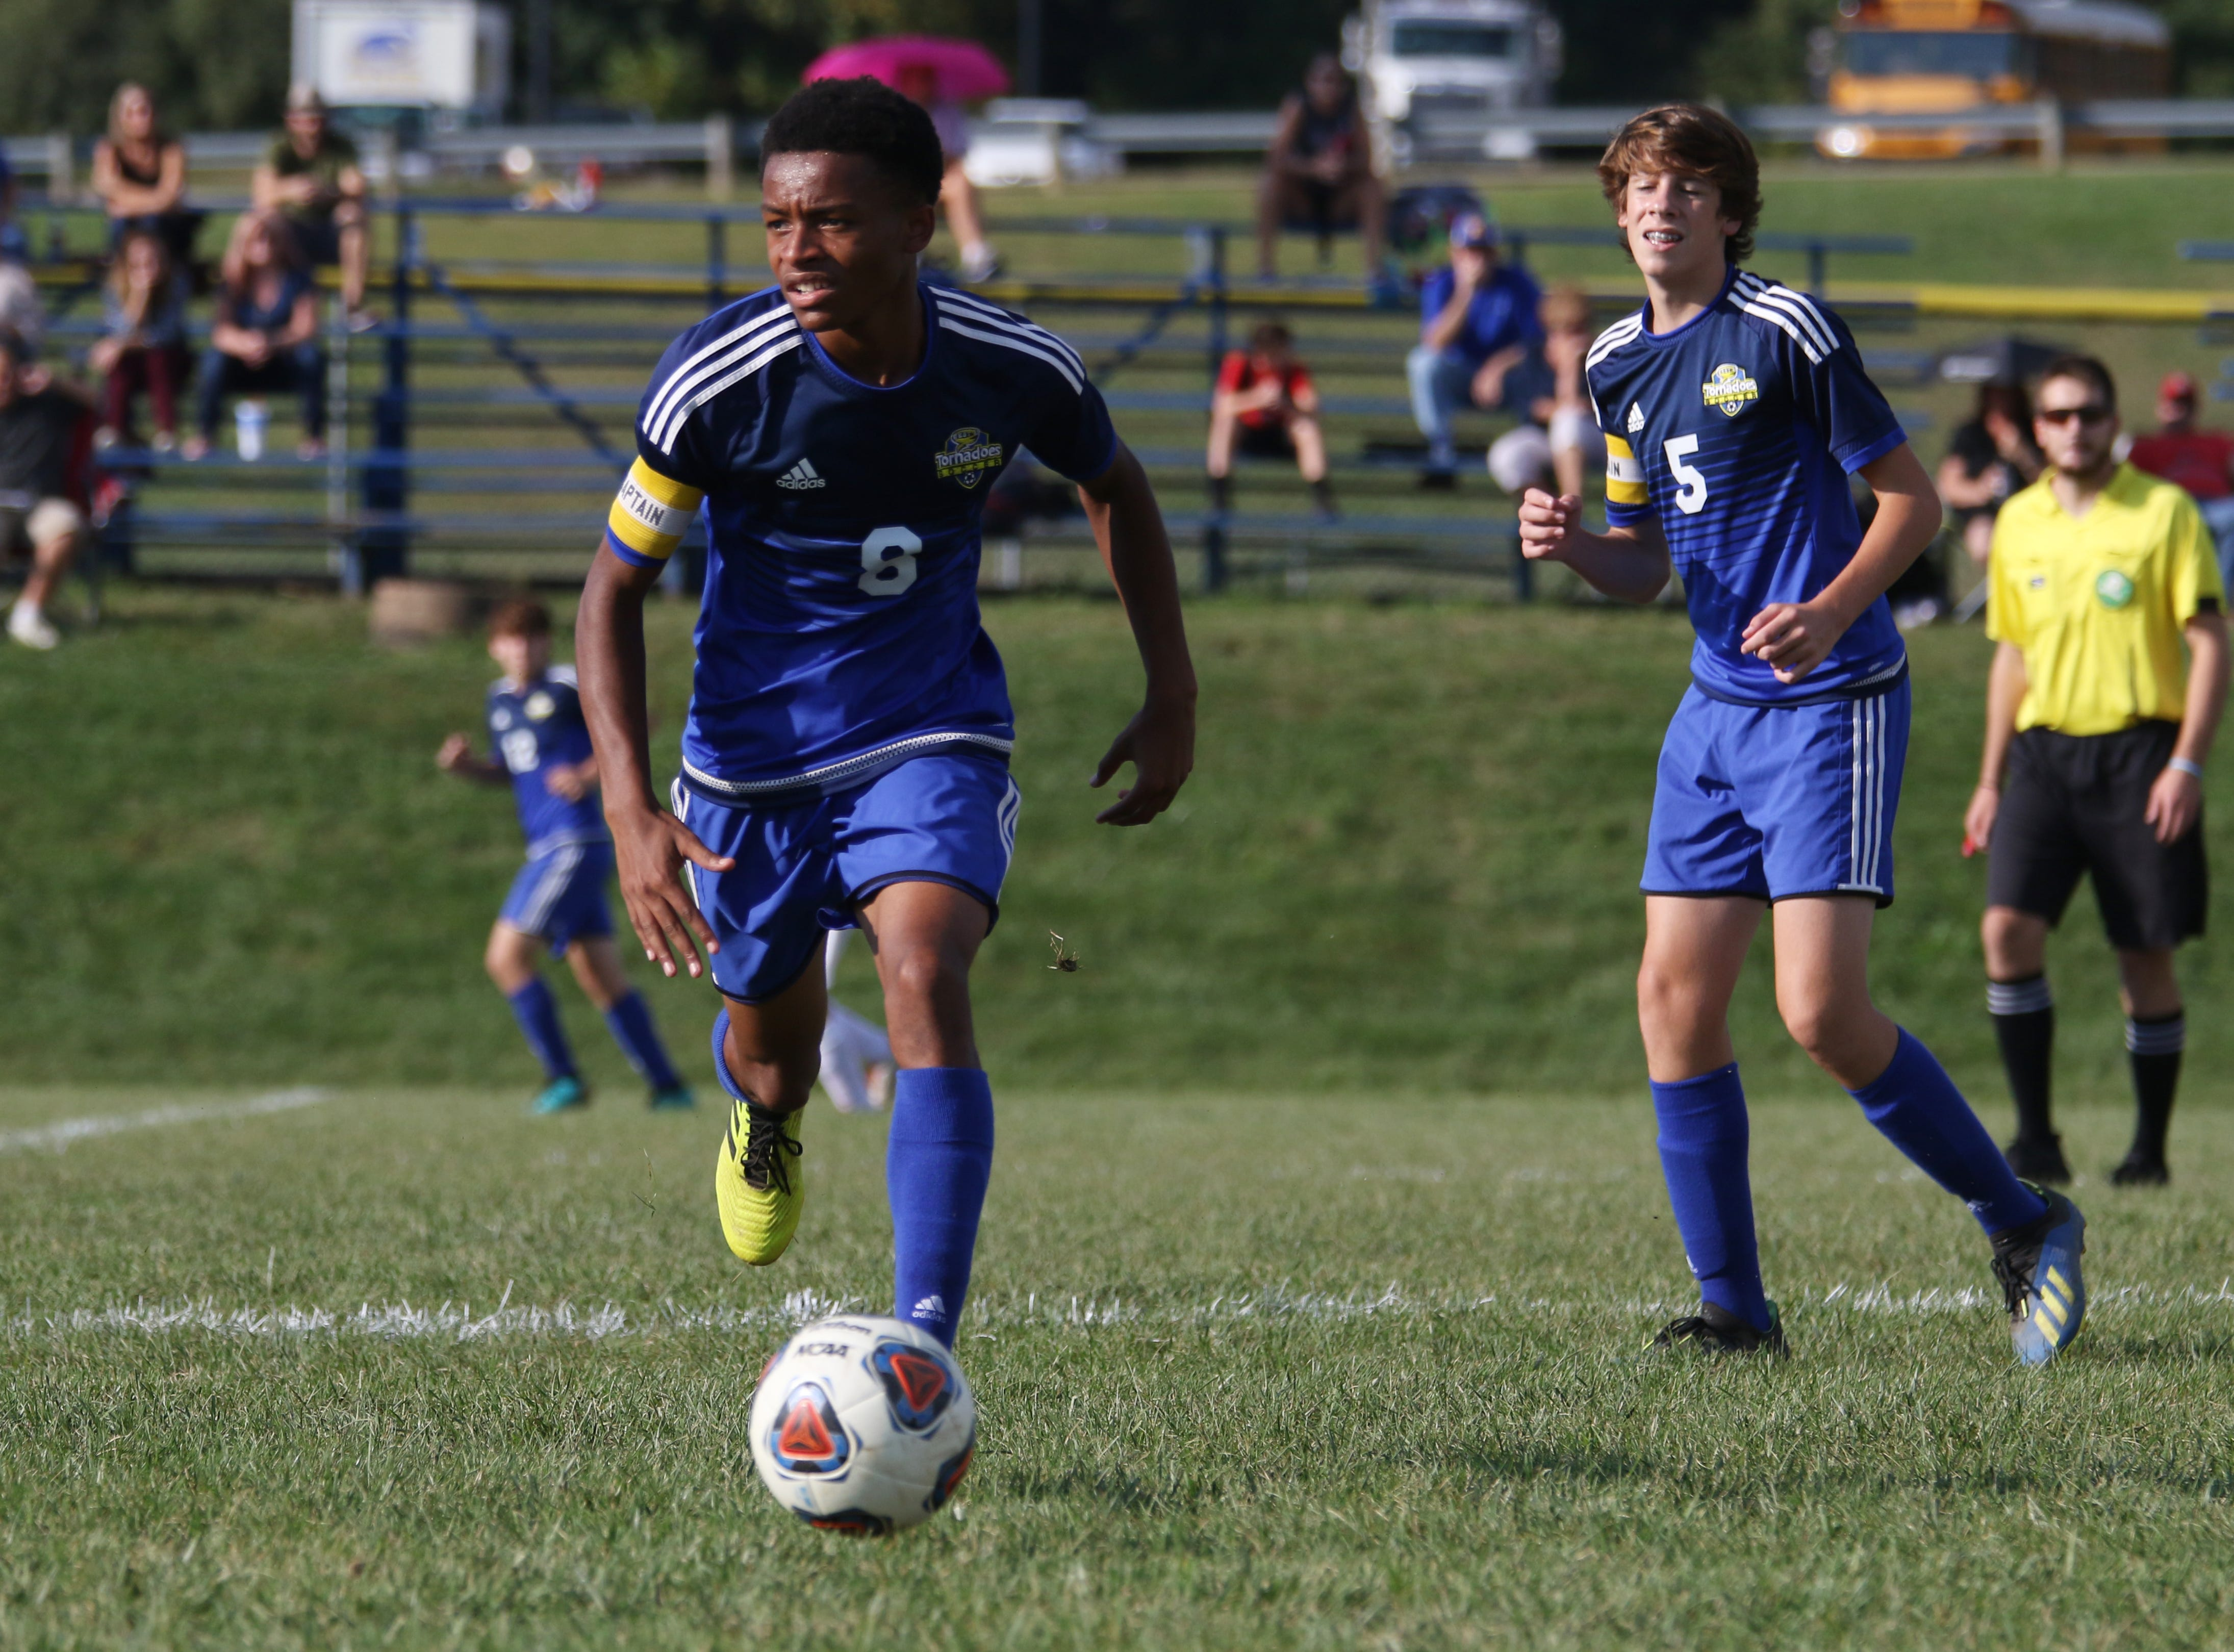 West Muskingum's Kaleb Ihlenfeld moves with the ball against Sheridan.